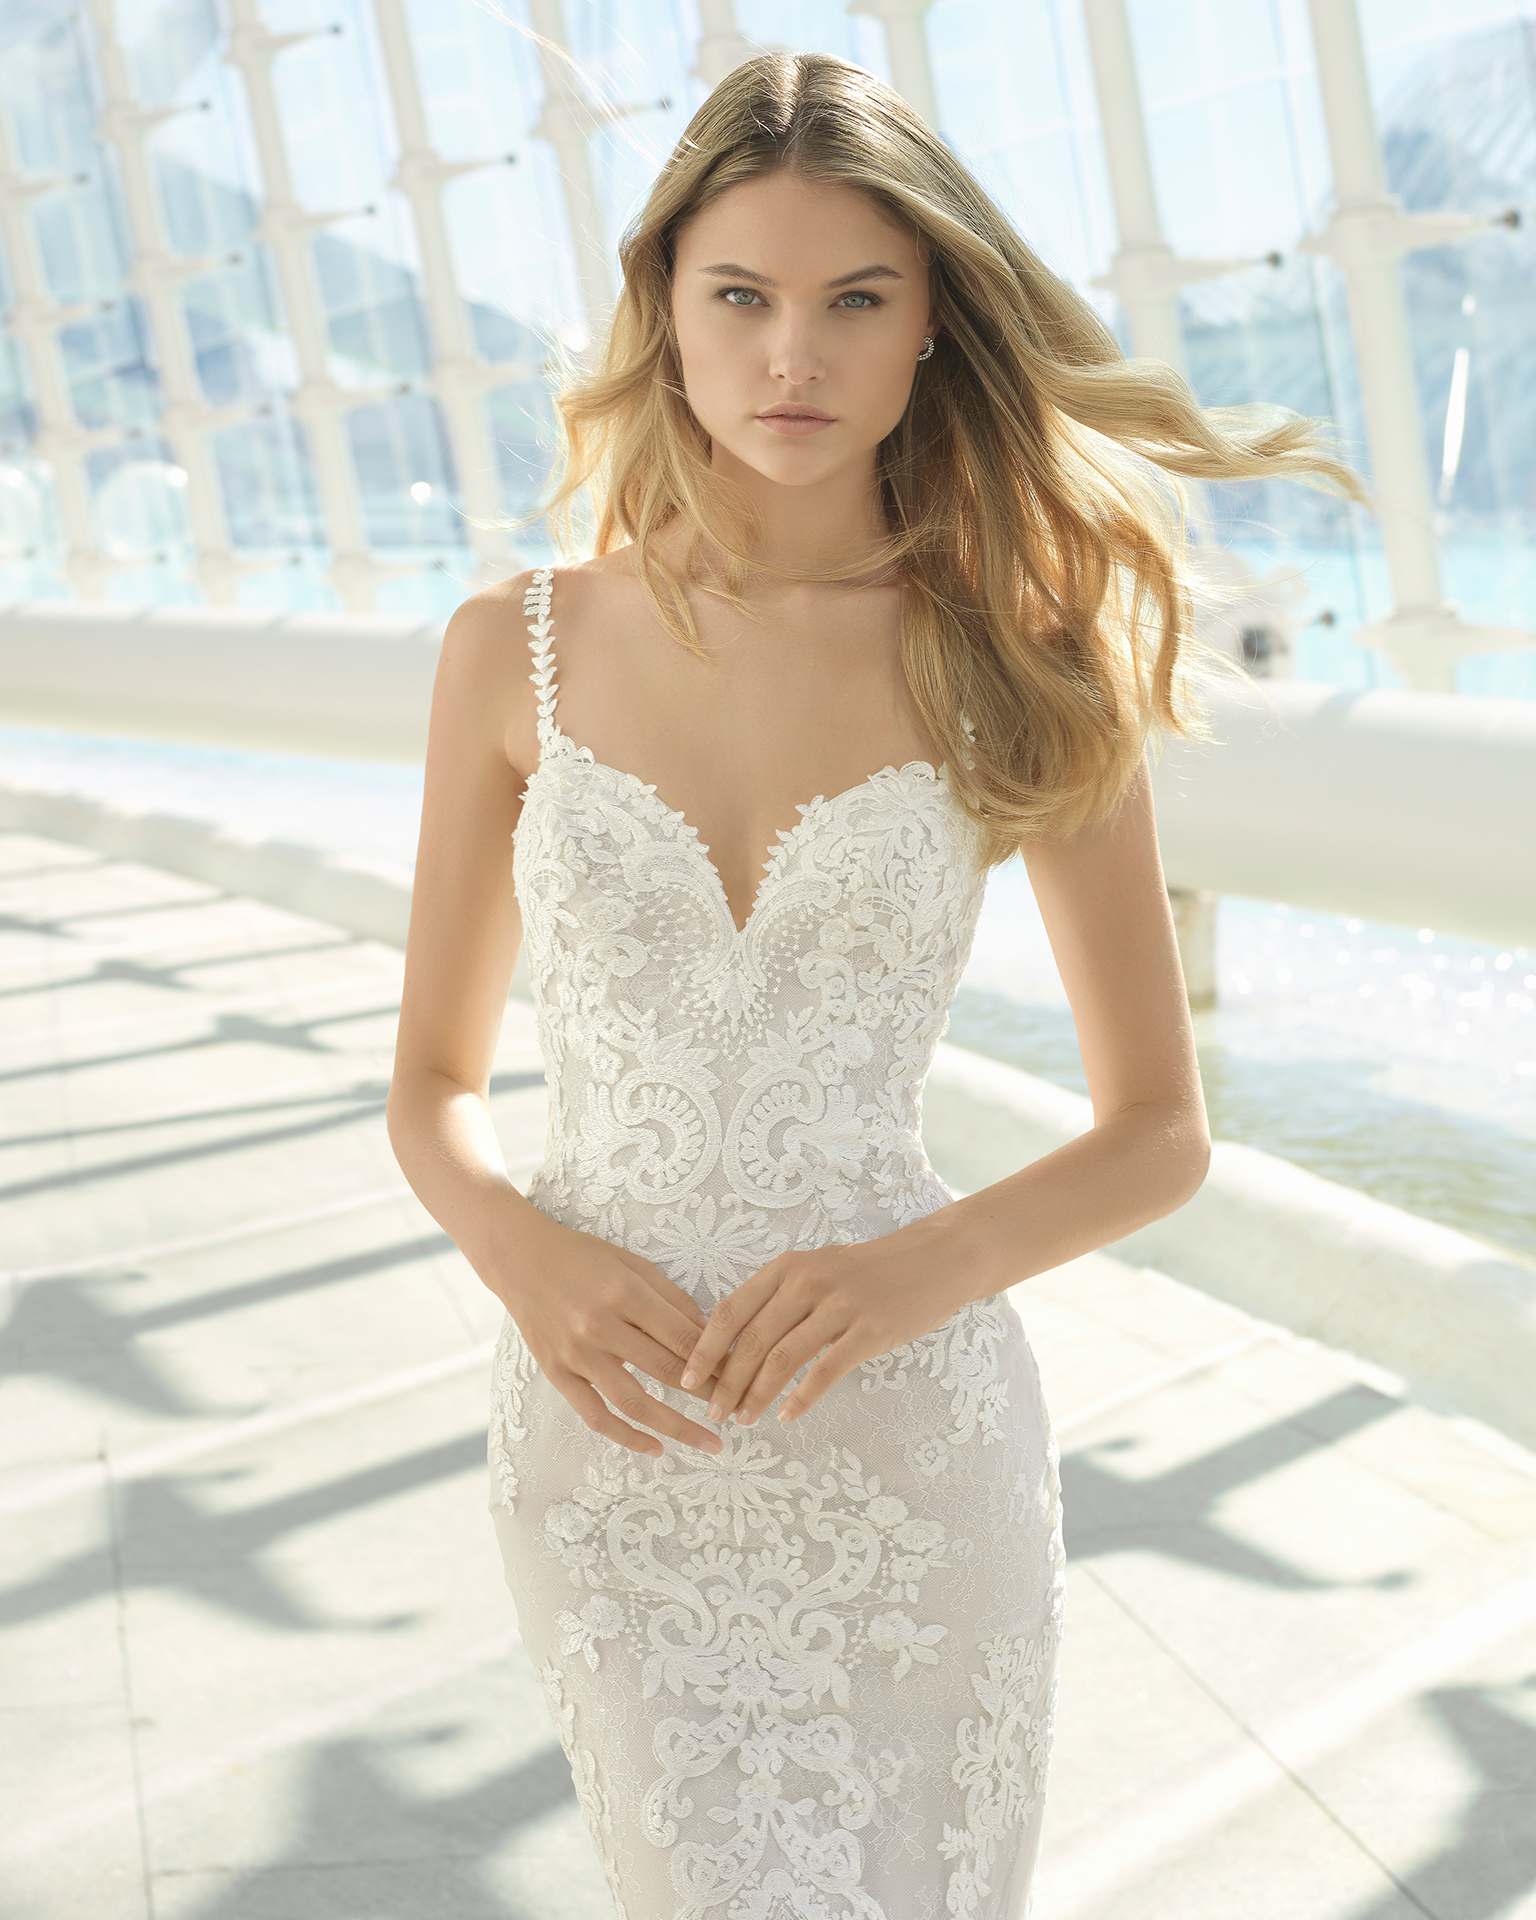 The Bridal Collection Real Bride: Rosa Clara Trunk Show